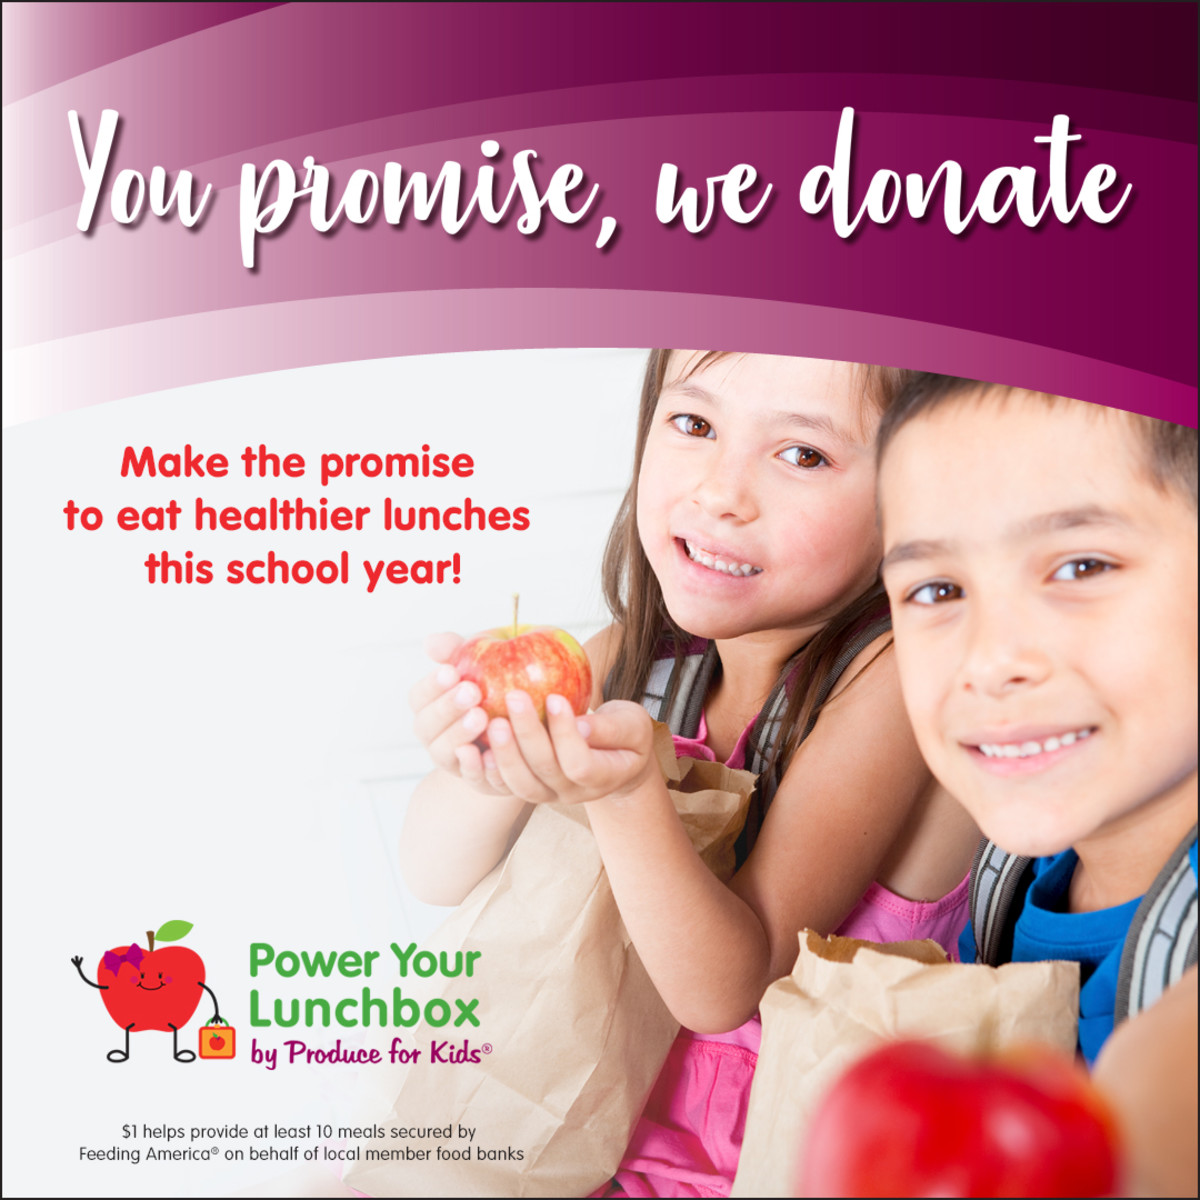 power your lunchbox, support families in need, food shortage, hungry kids, back to school, help feed children, produce for kids, kids healthy lunches, food banks, lunch for kids in need, helping children in need